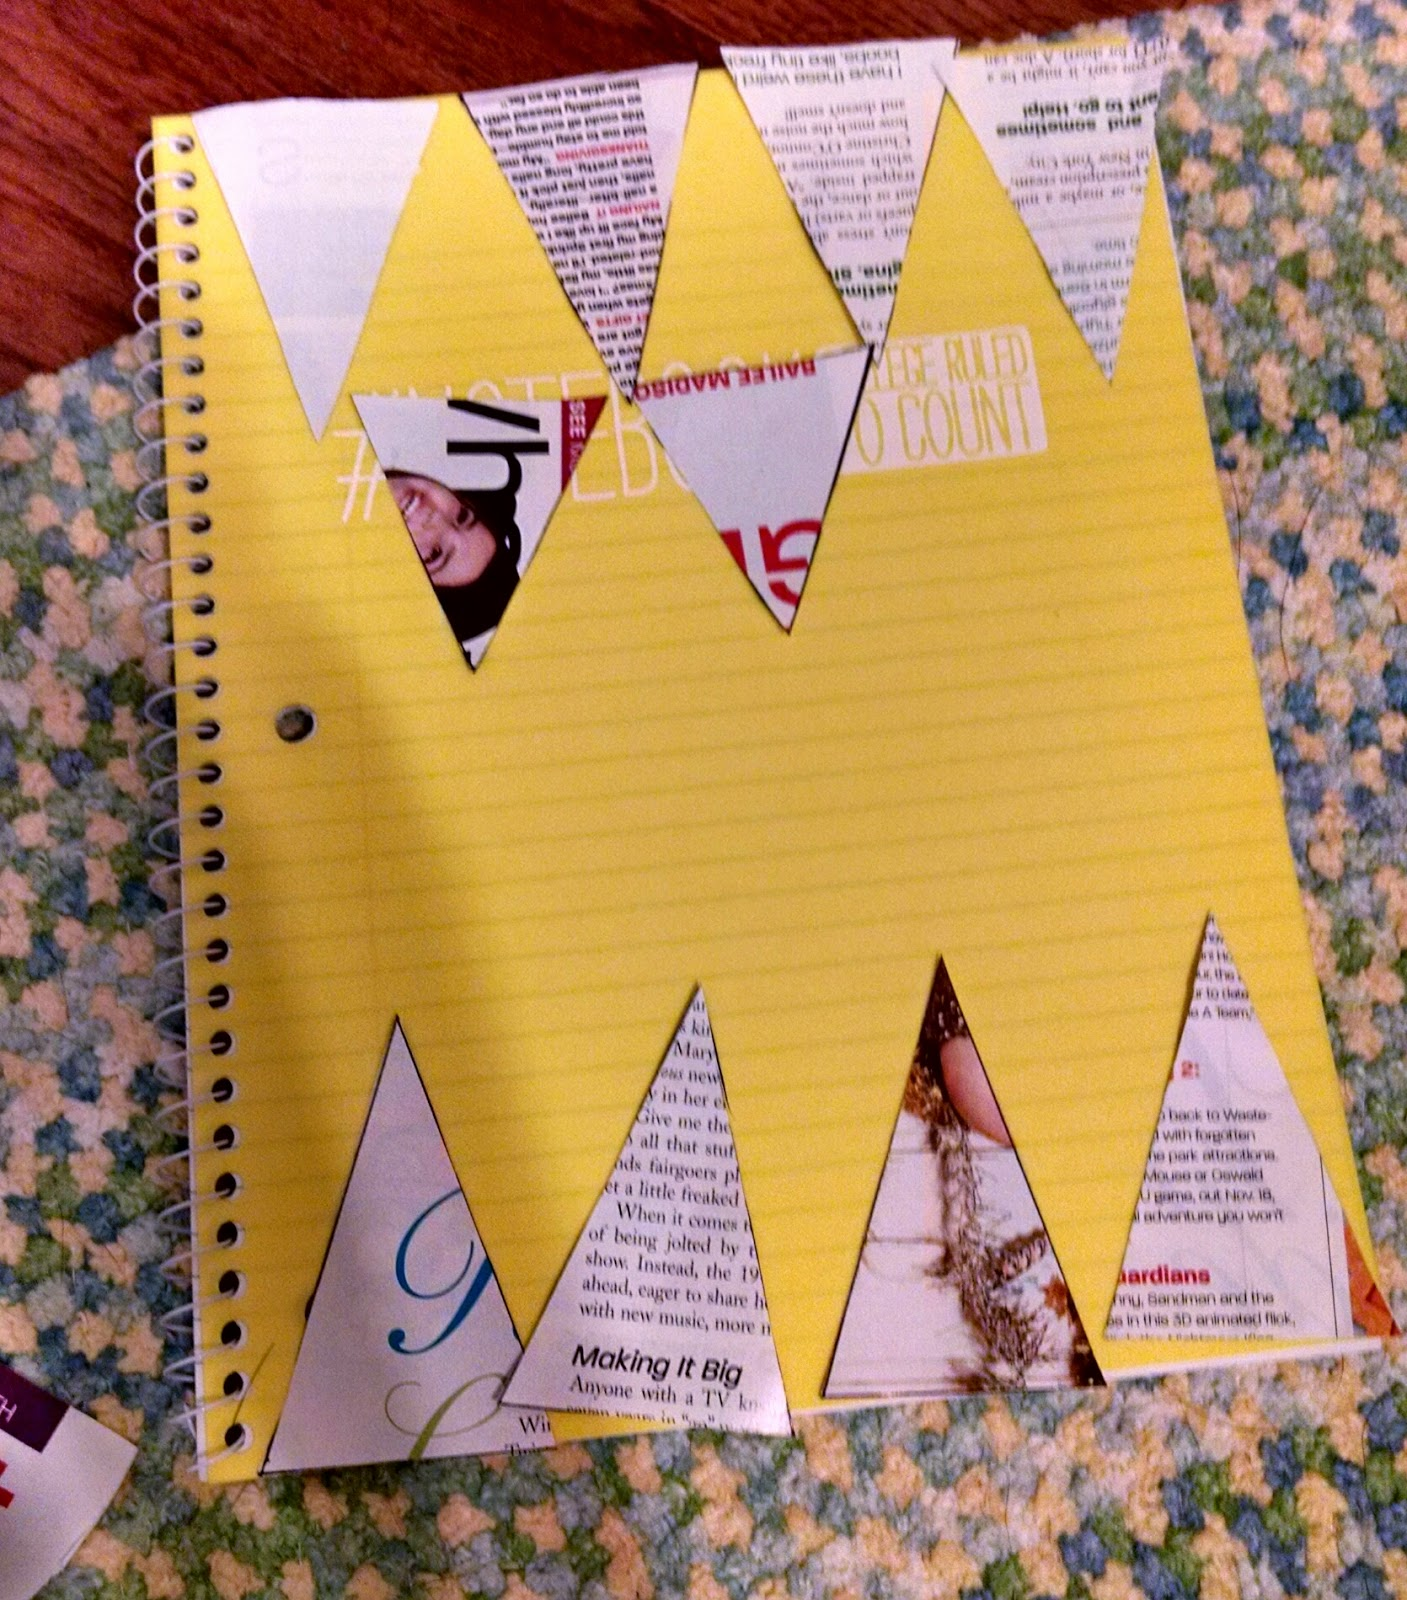 Glue And You: DIY School Supplies #4: Tumblr Inspired